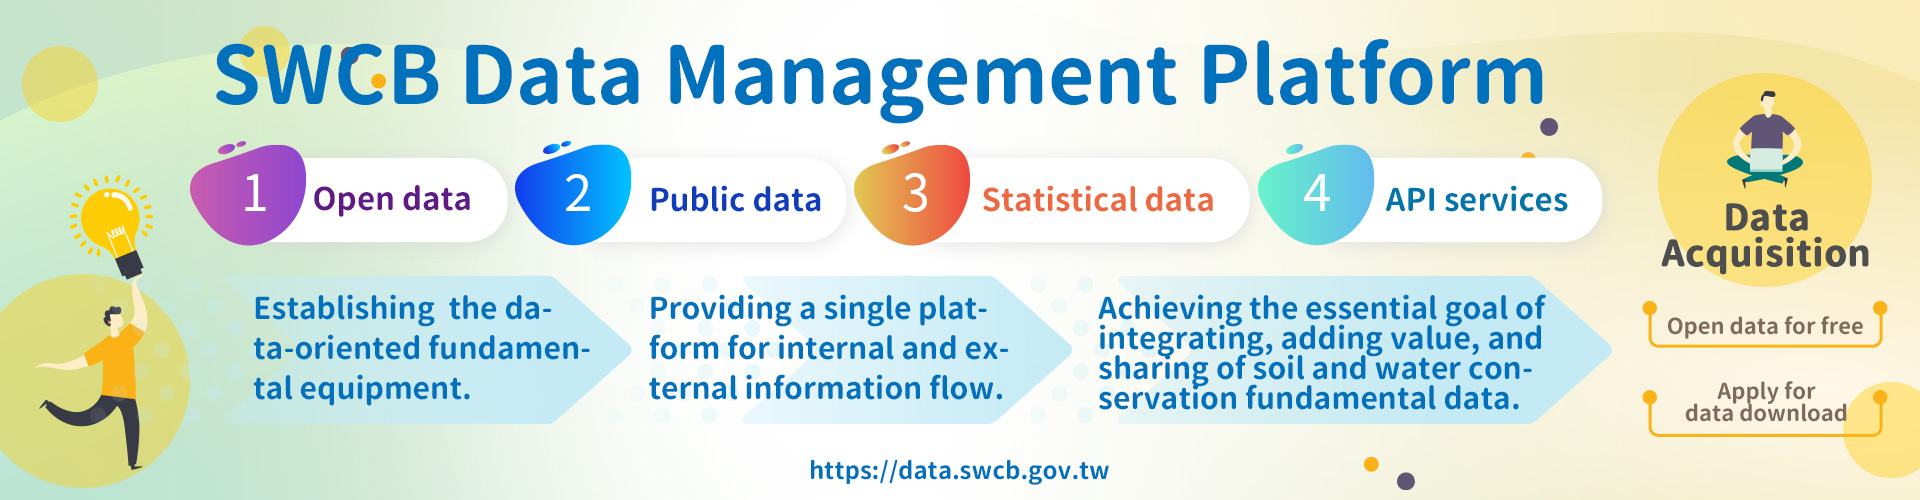 SWCB Data Management Platform